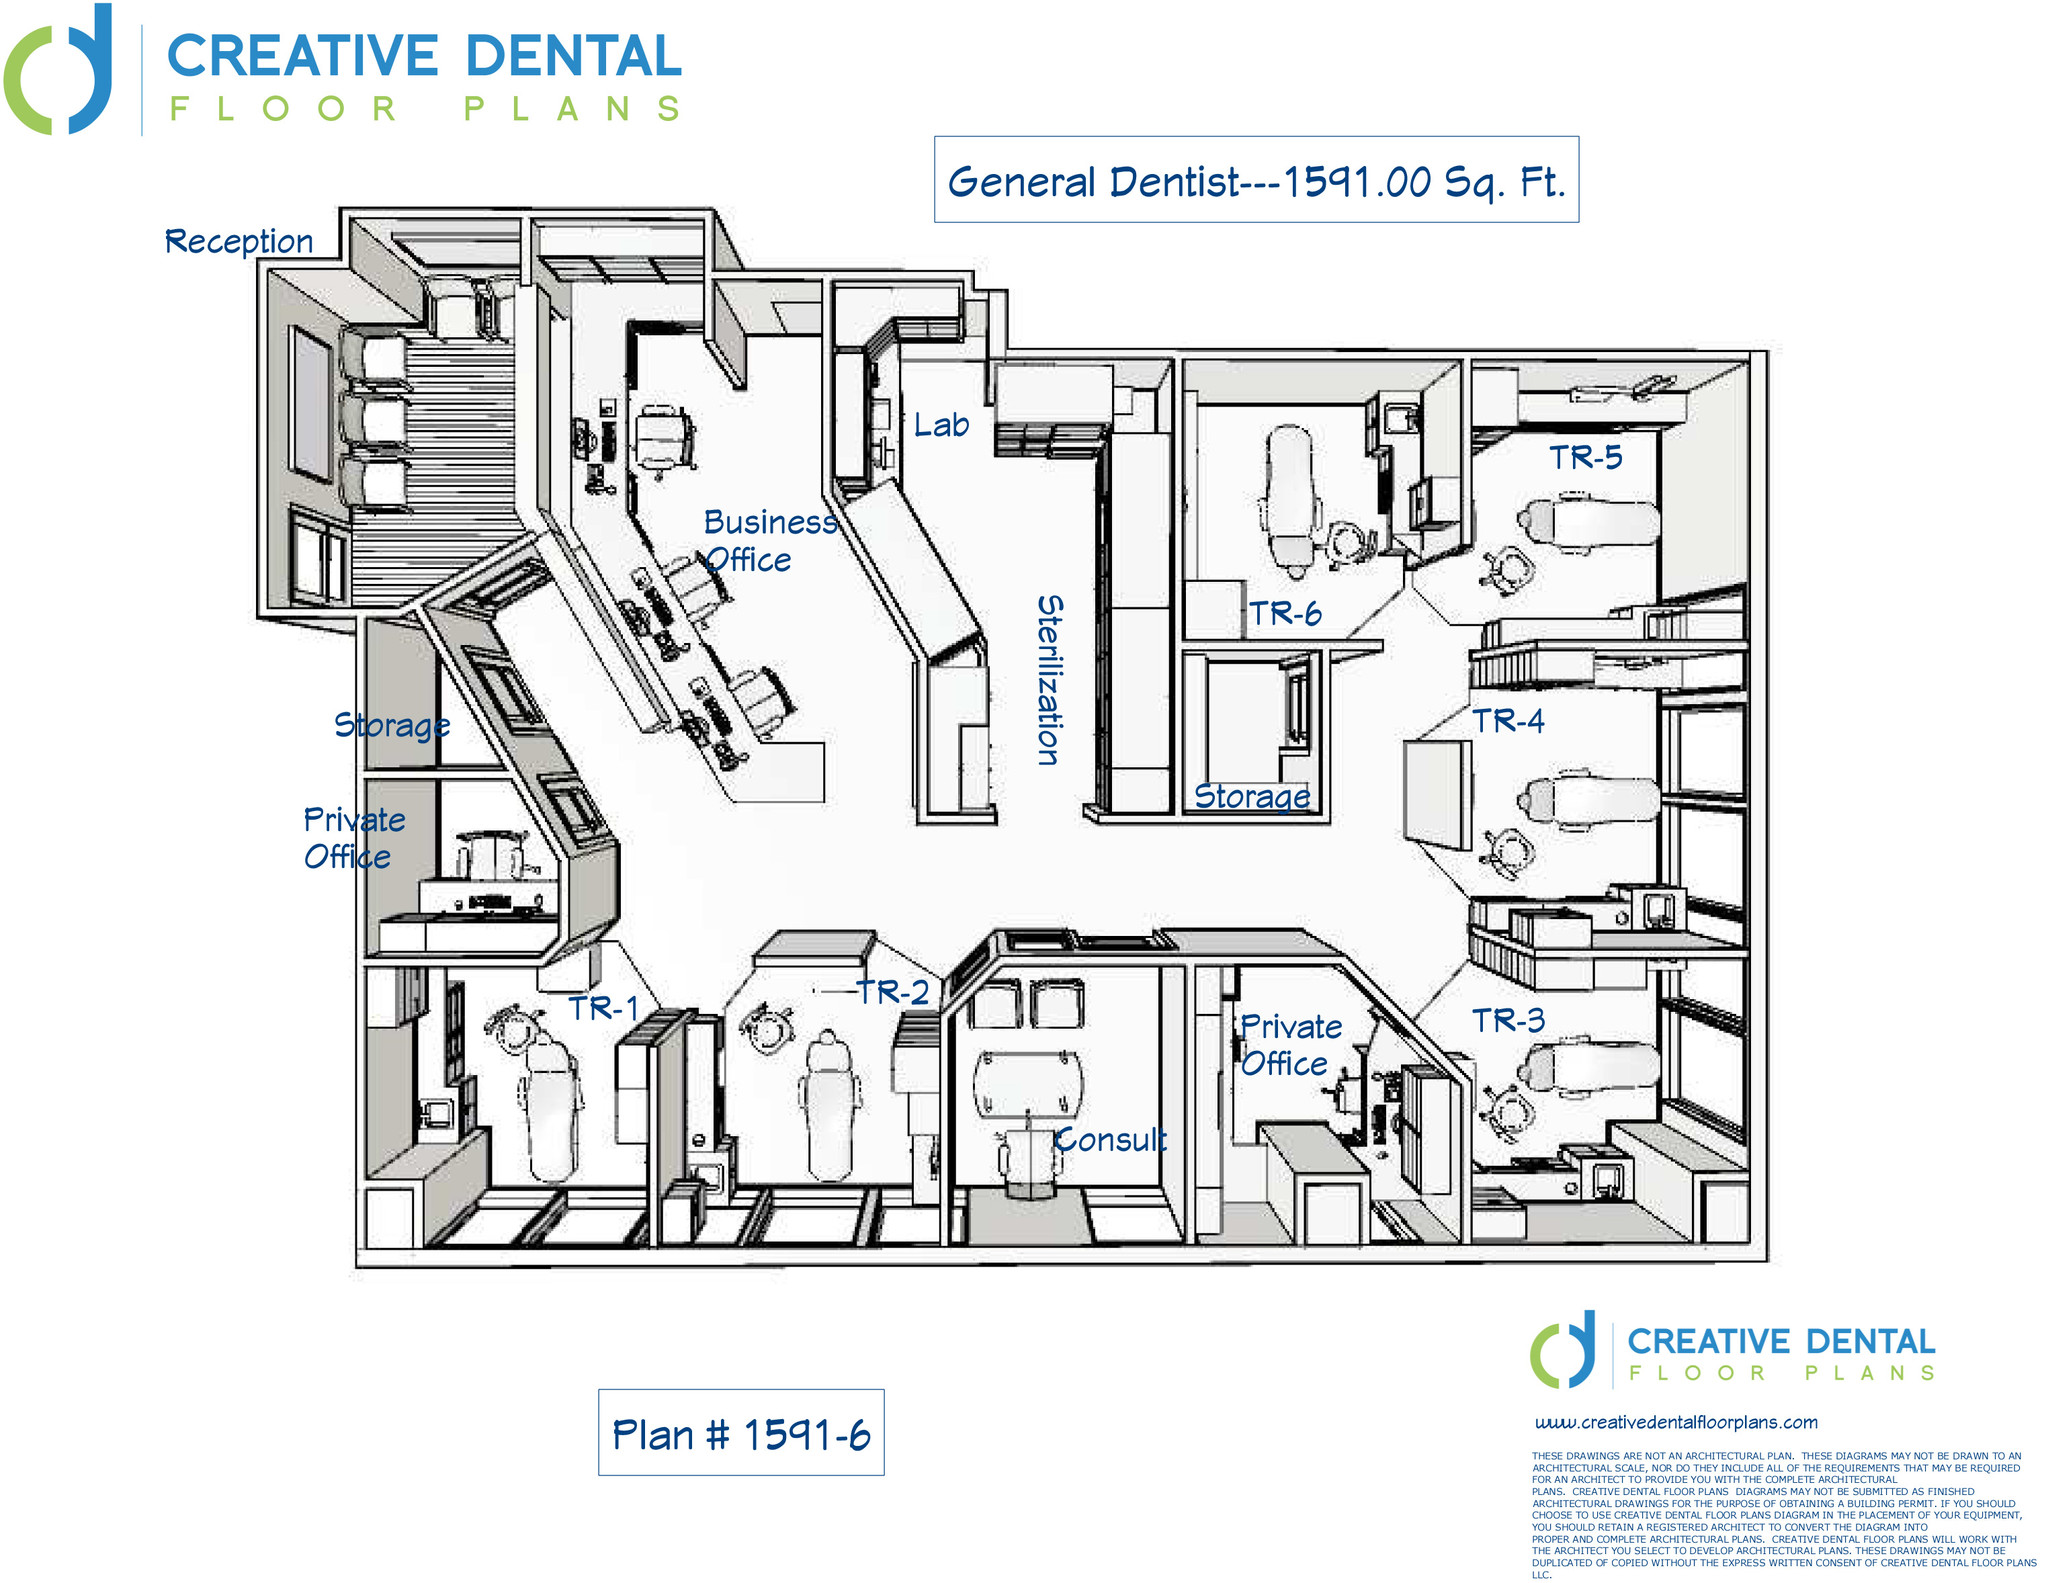 Creative dental floor plans endodontist floor plans for Creative floor plans